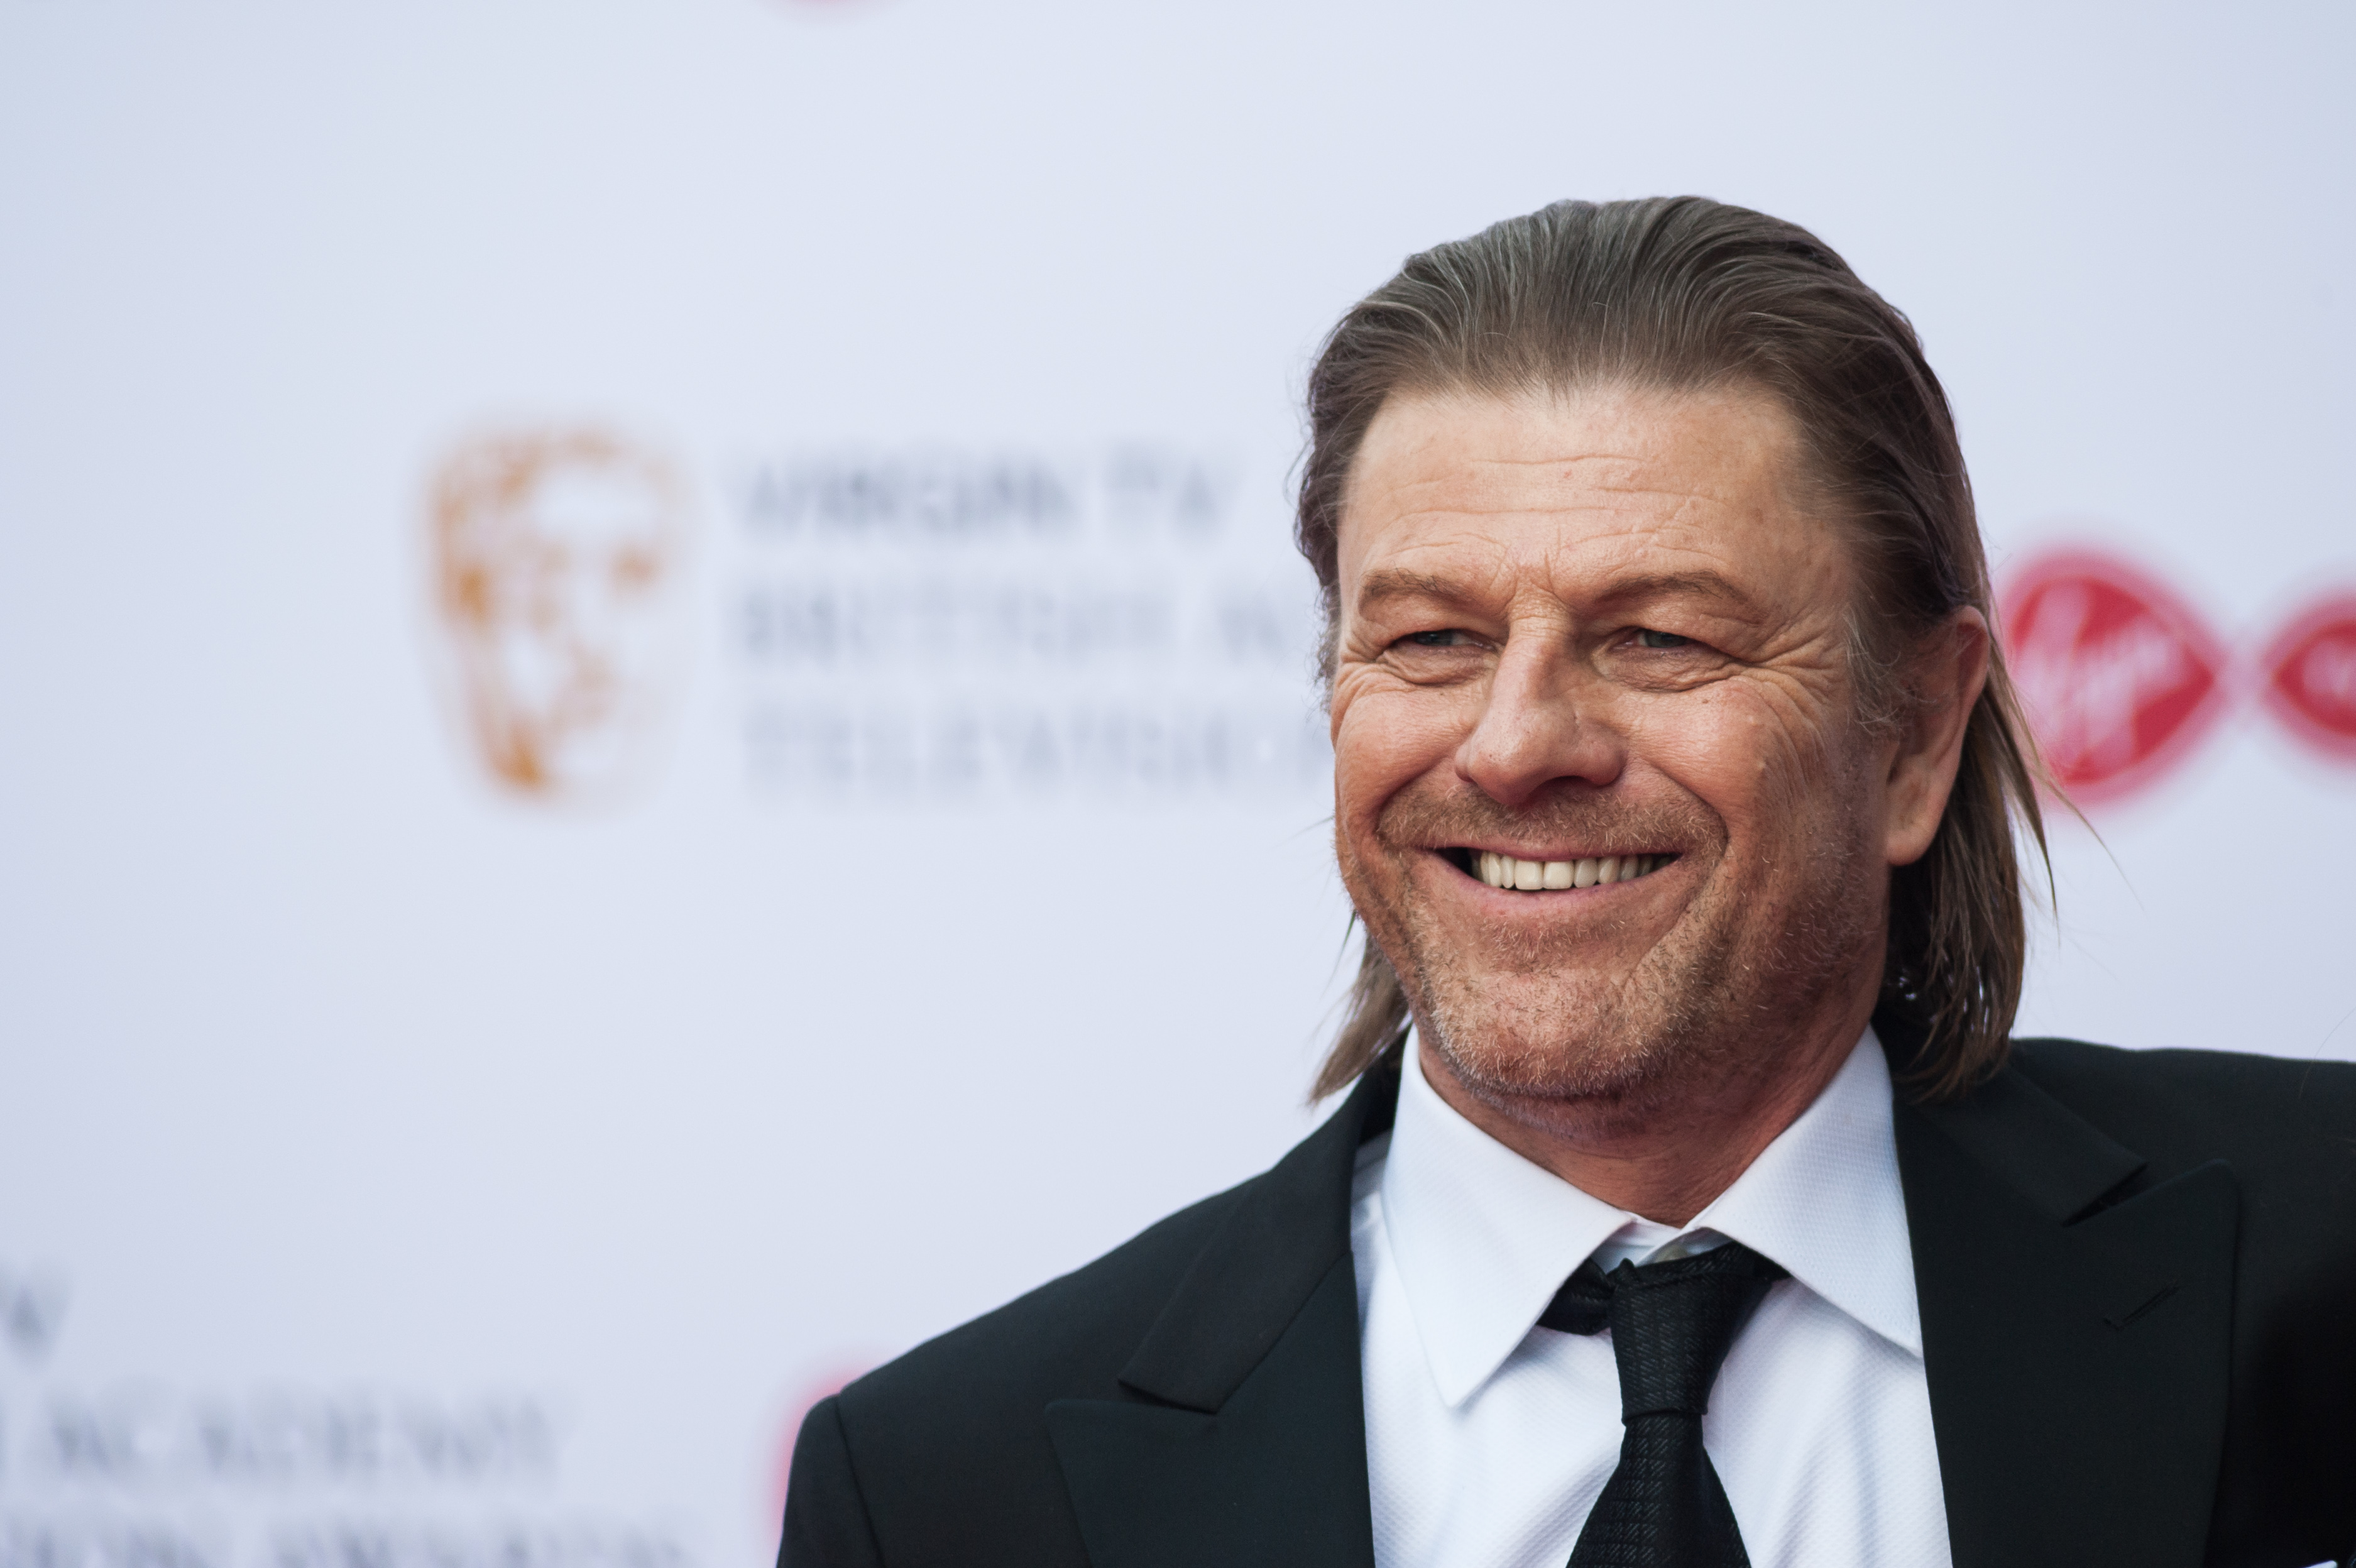 Sean Bean attends the Virgin TV British Academy Television Awards ceremony at the Royal Festival Hall on May 14, 2017 in London, United Kingdom.